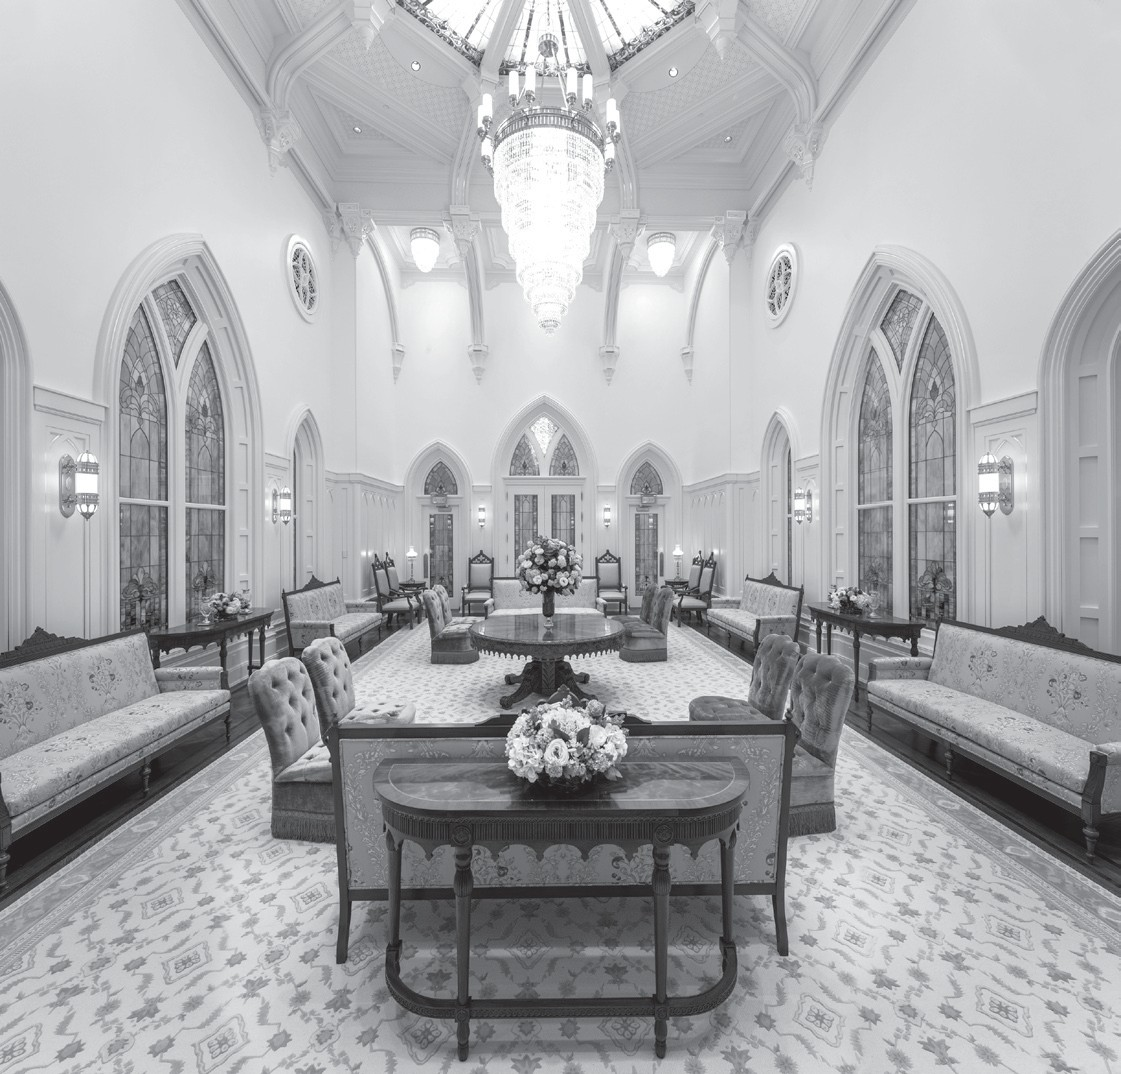 This photo provided by The Church of Jesus Christ of Latter-day Saints shows the celestial room on the top floor of the Provo City Center Temple in Provo, Utah.